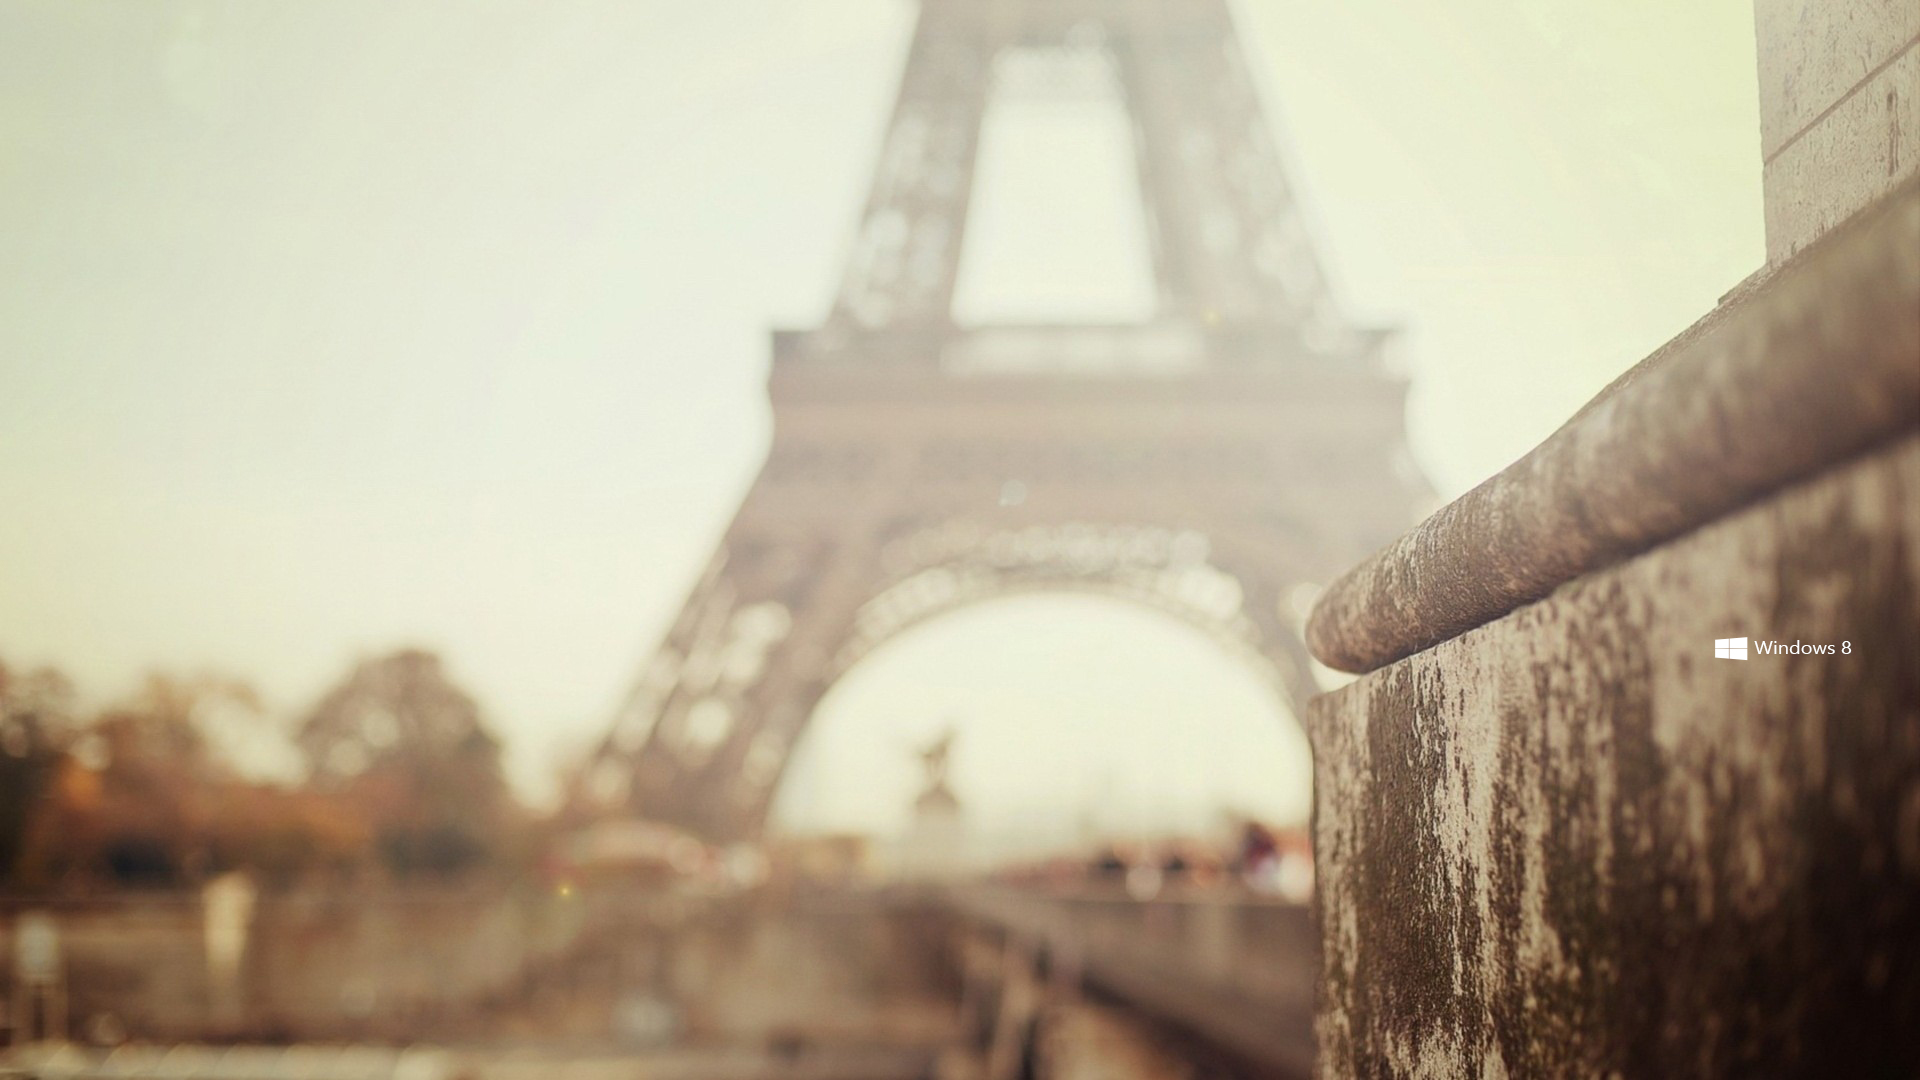 Windows 8 eiffel tower blurred by nofearl on deviantart windows 8 eiffel tower blurred by nofearl toneelgroepblik Image collections